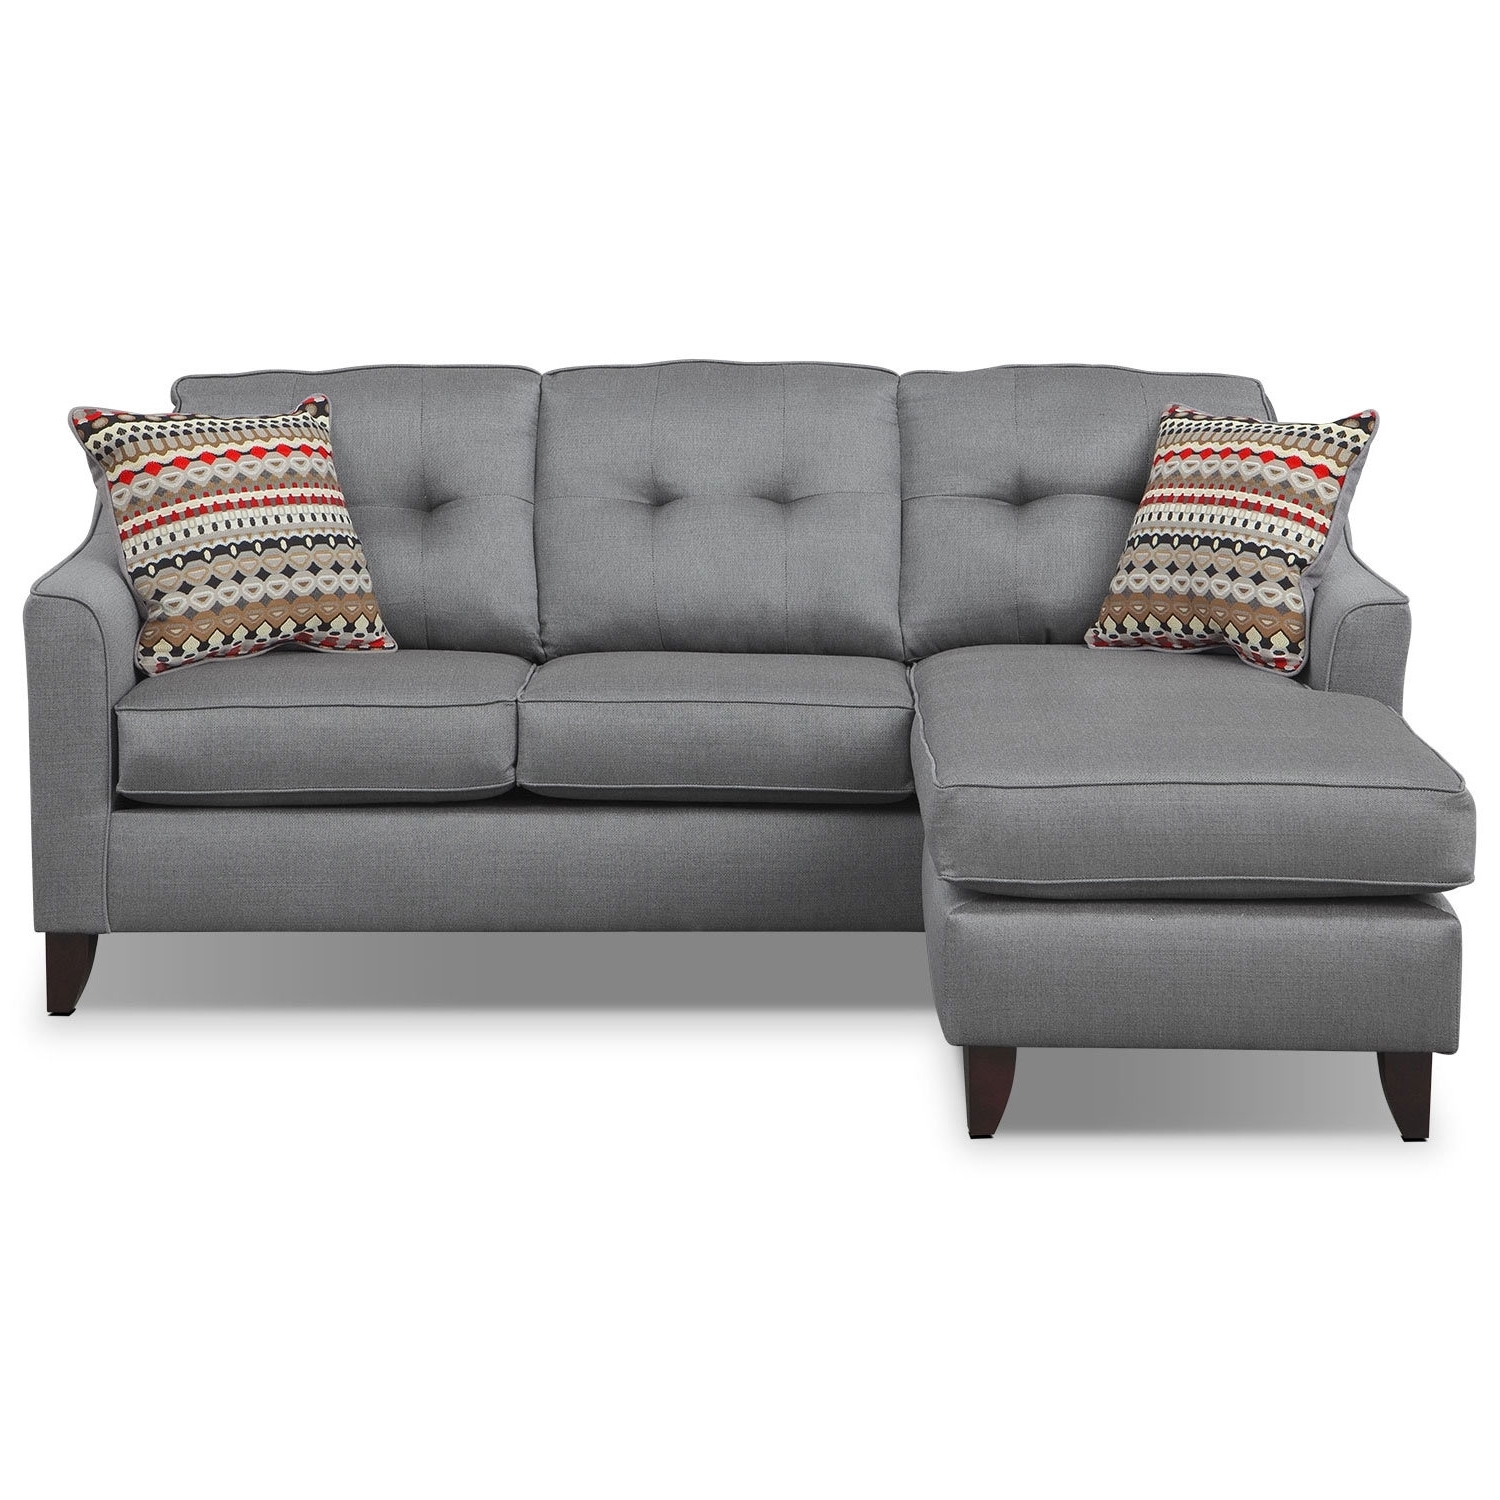 Favorite Sofas And More Knoxville Tn 83 With Sofas And More Knoxville Tn With Regard To Knoxville Tn Sectional Sofas (View 5 of 20)